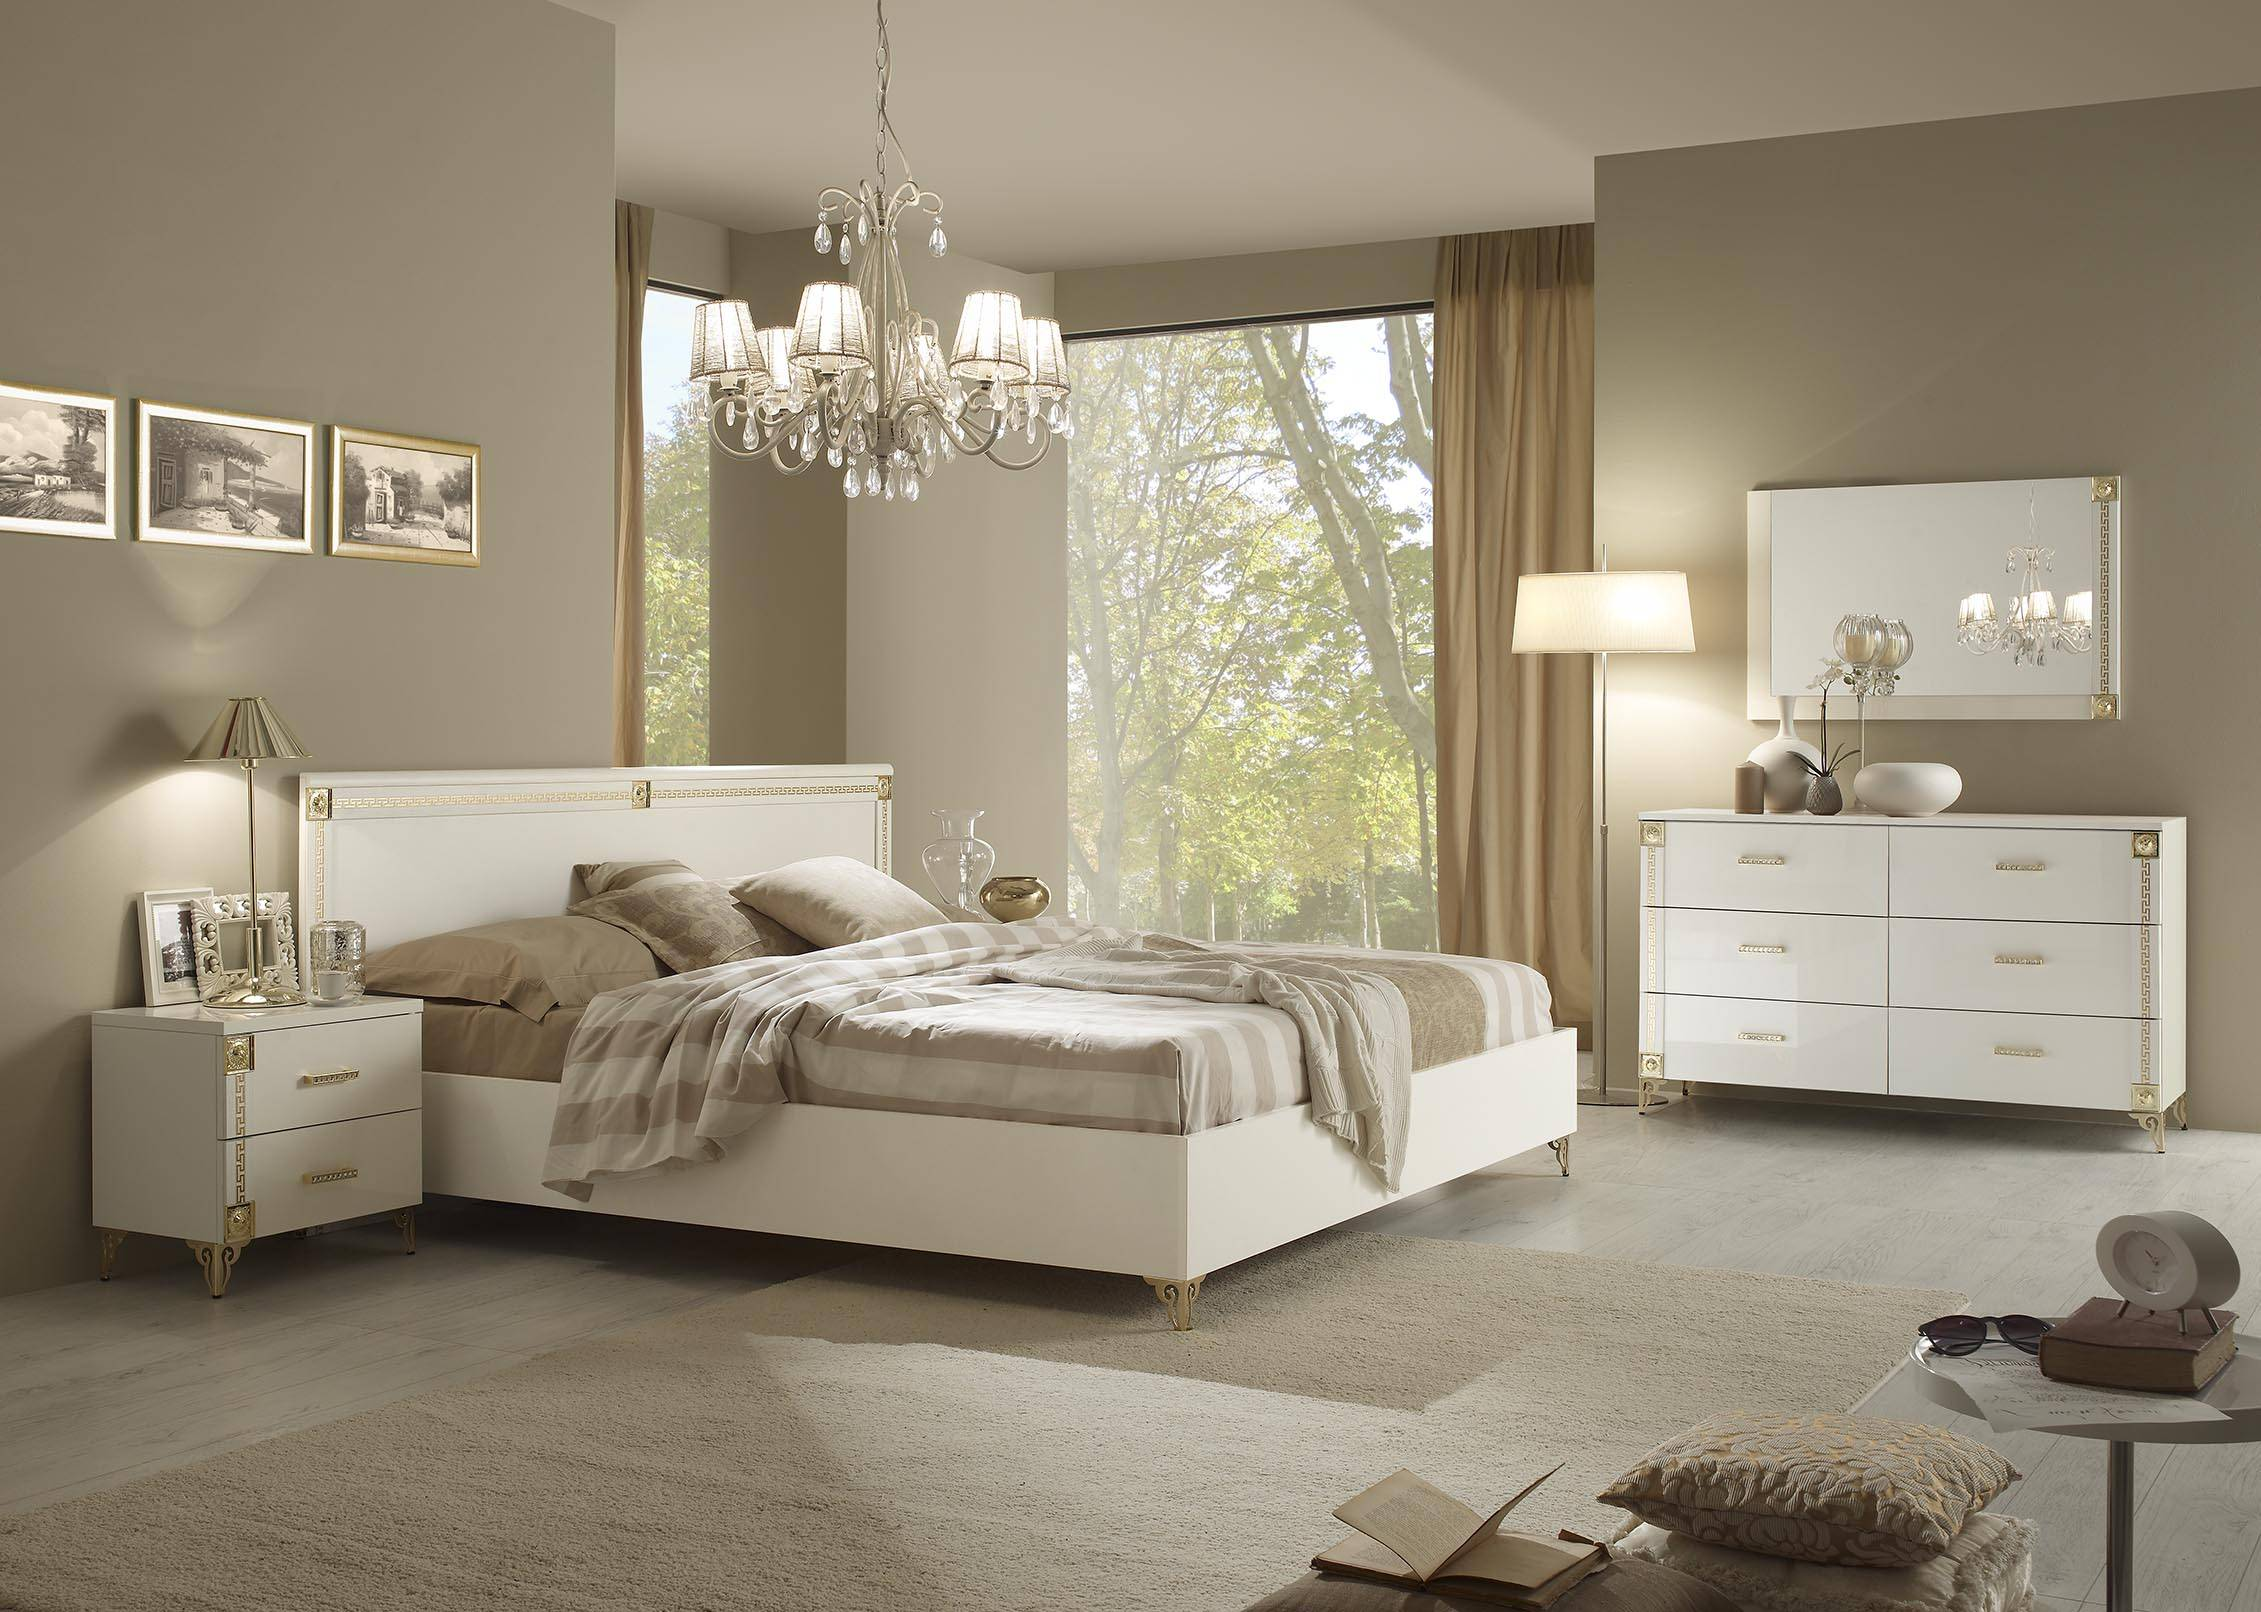 luxury bedroom sets. Bedroom Sets Collection  Master Furniture Made in Italy Quality Luxury Modern Set with Golden